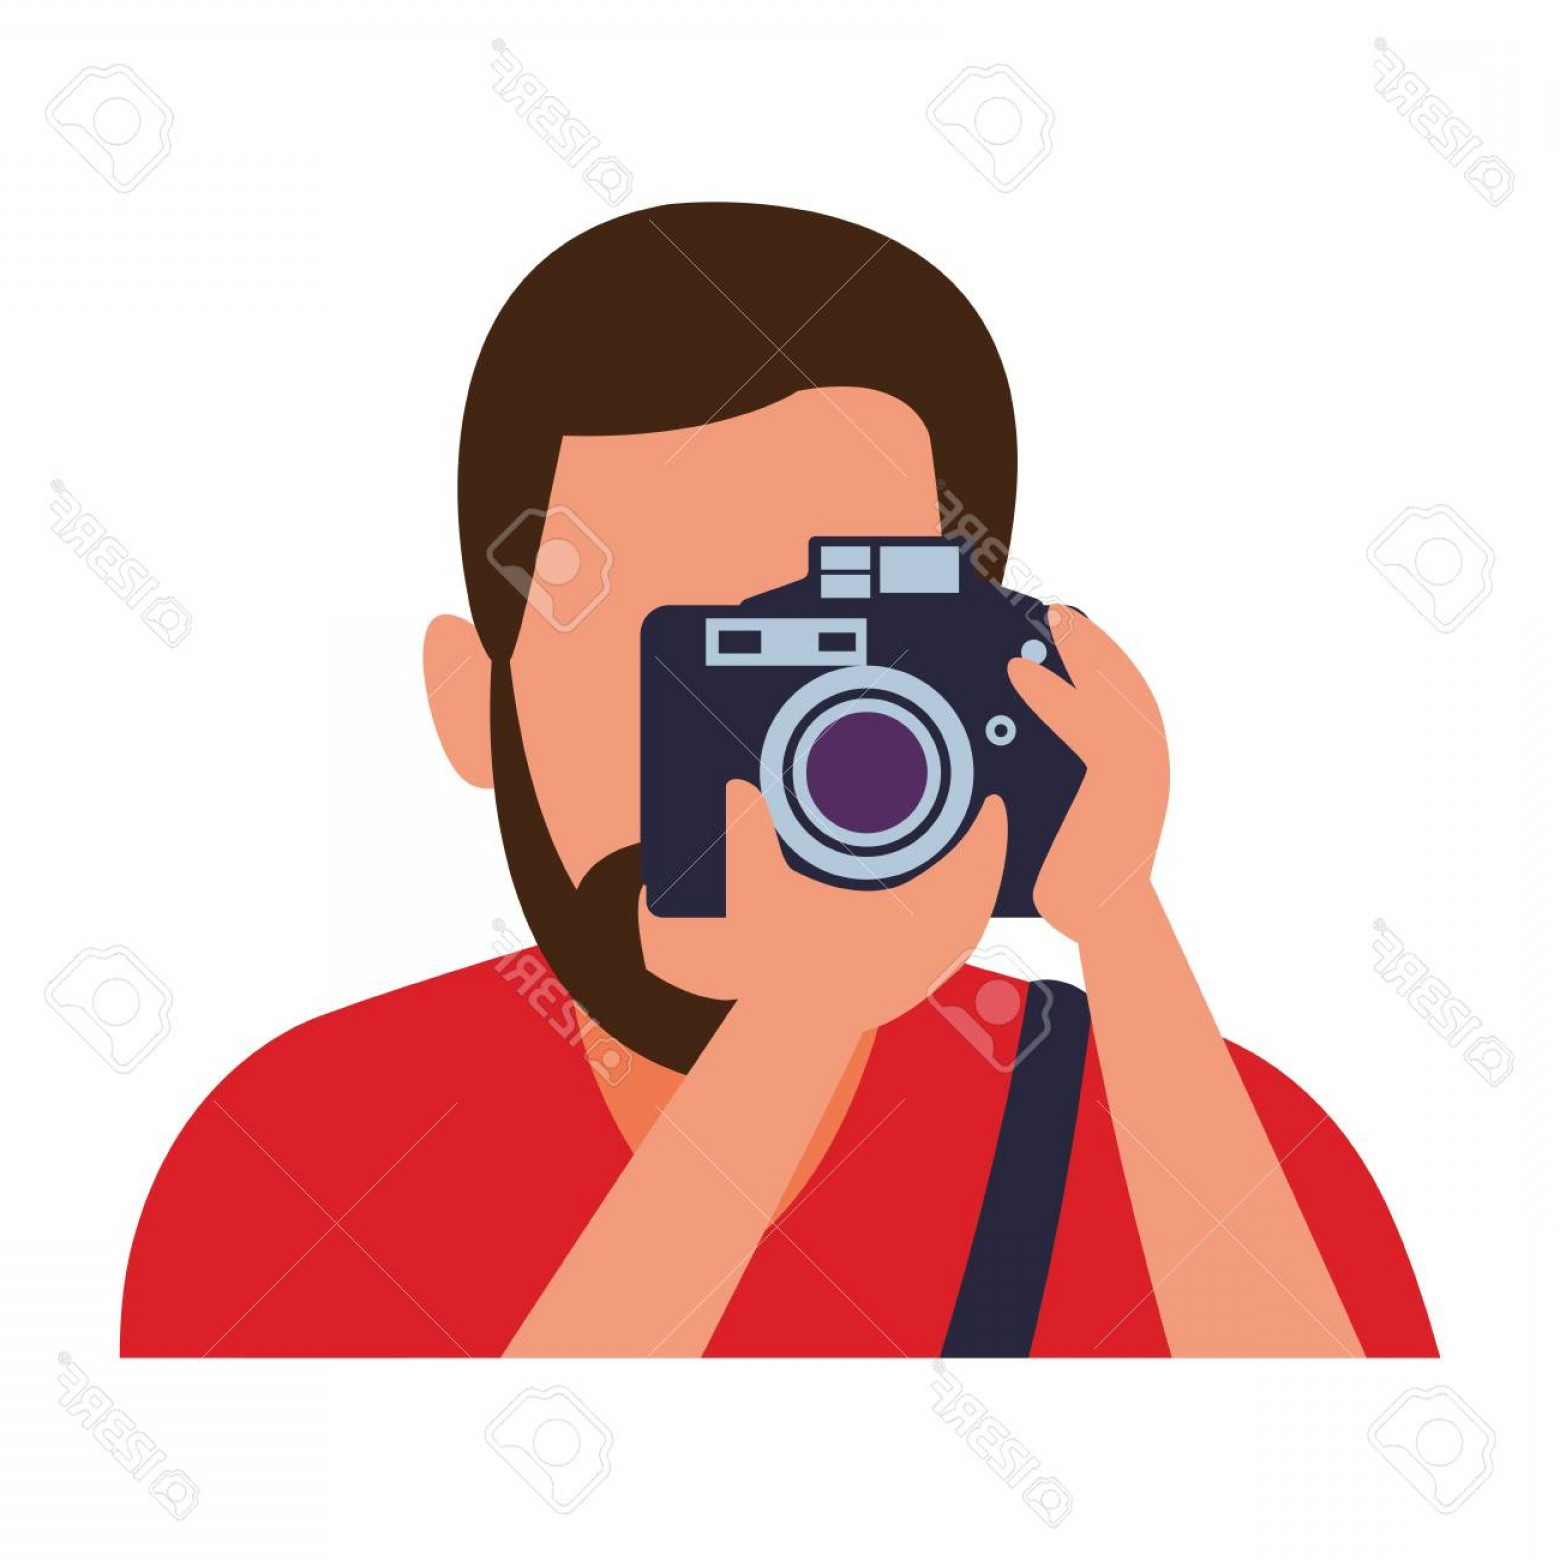 Hires Camera Lens Vector: Photostock Vector Photographer With Camera Profession Avatar Vector Illustration Graphic Design